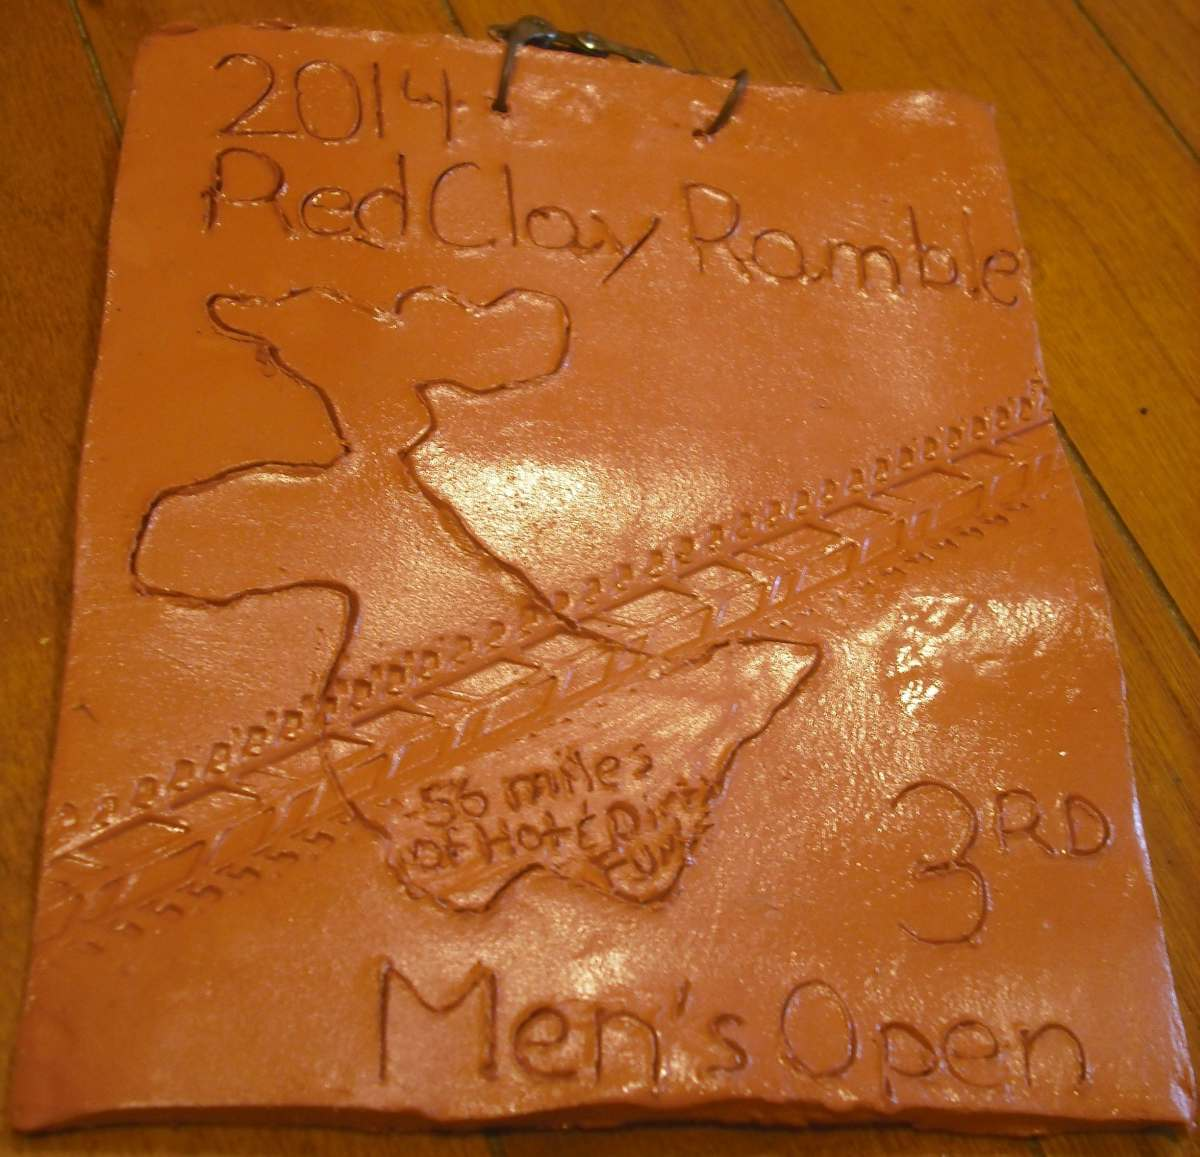 2014 red clay ramble